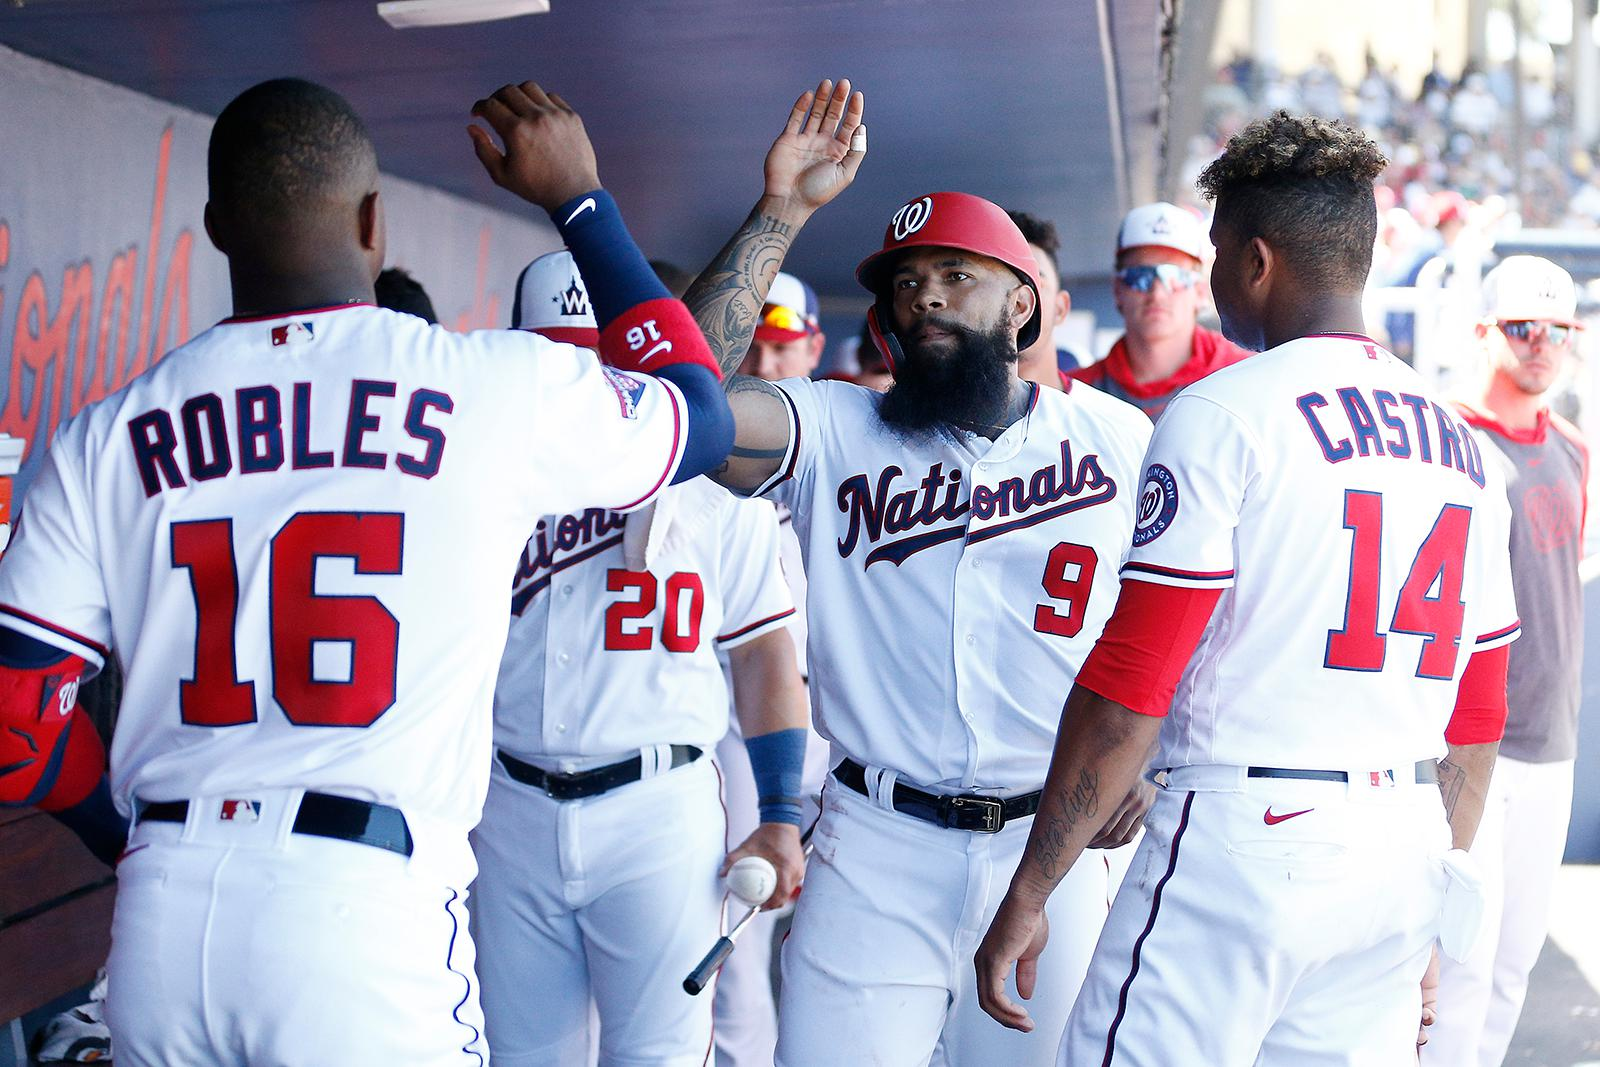 Wash-Nationals-by-Michael-Reaves-Getty-Images-(1)